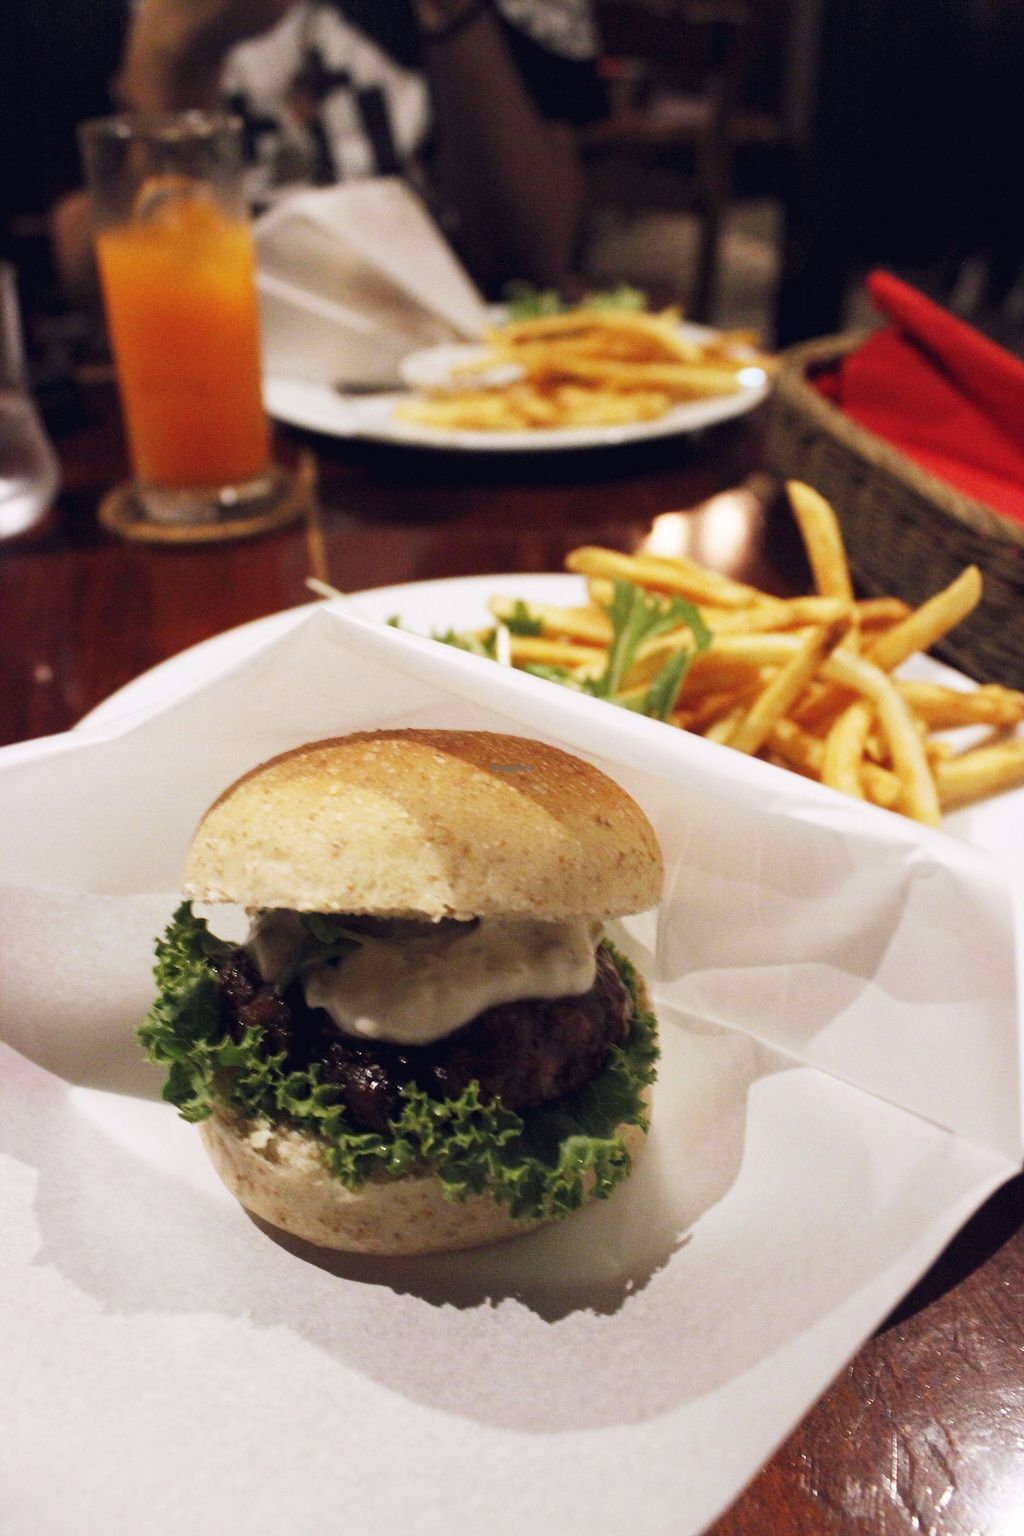 """Photo of CLOSED: Matsuontoko Cafe  by <a href=""""/members/profile/YukiLim"""">YukiLim</a> <br/>Vegan nanban burger <br/> July 16, 2017  - <a href='/contact/abuse/image/31575/280907'>Report</a>"""